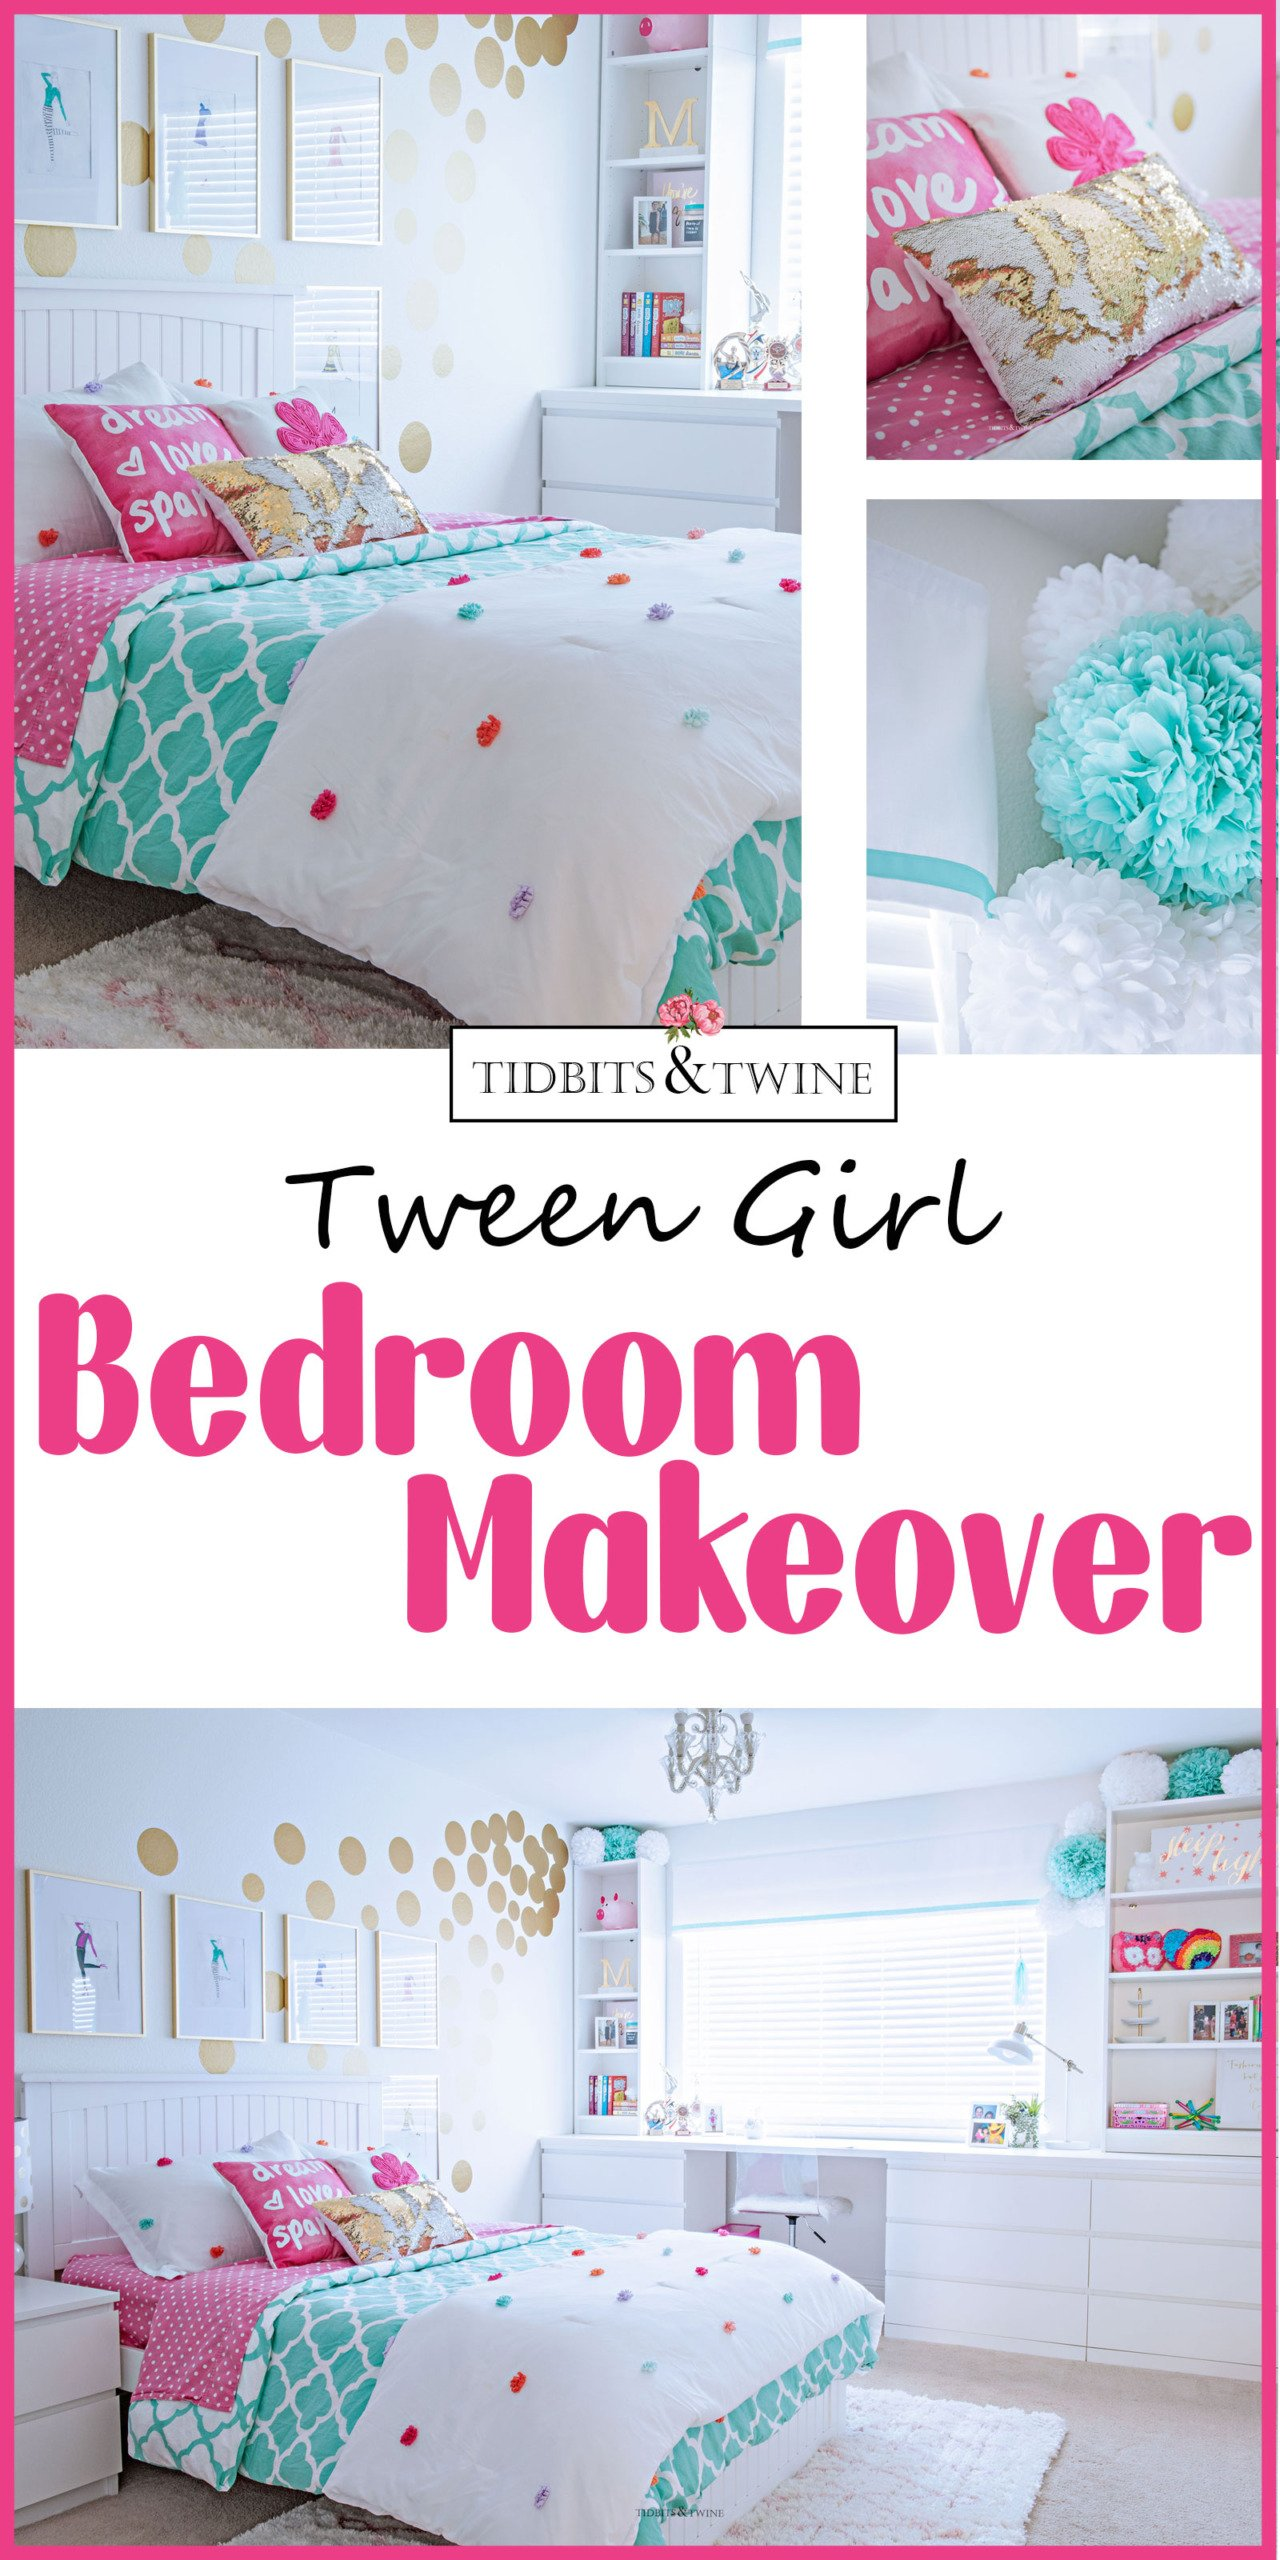 Teen Girl Bedroom Makeover Modern Style with Built-ins Around Window in Turquoise and White